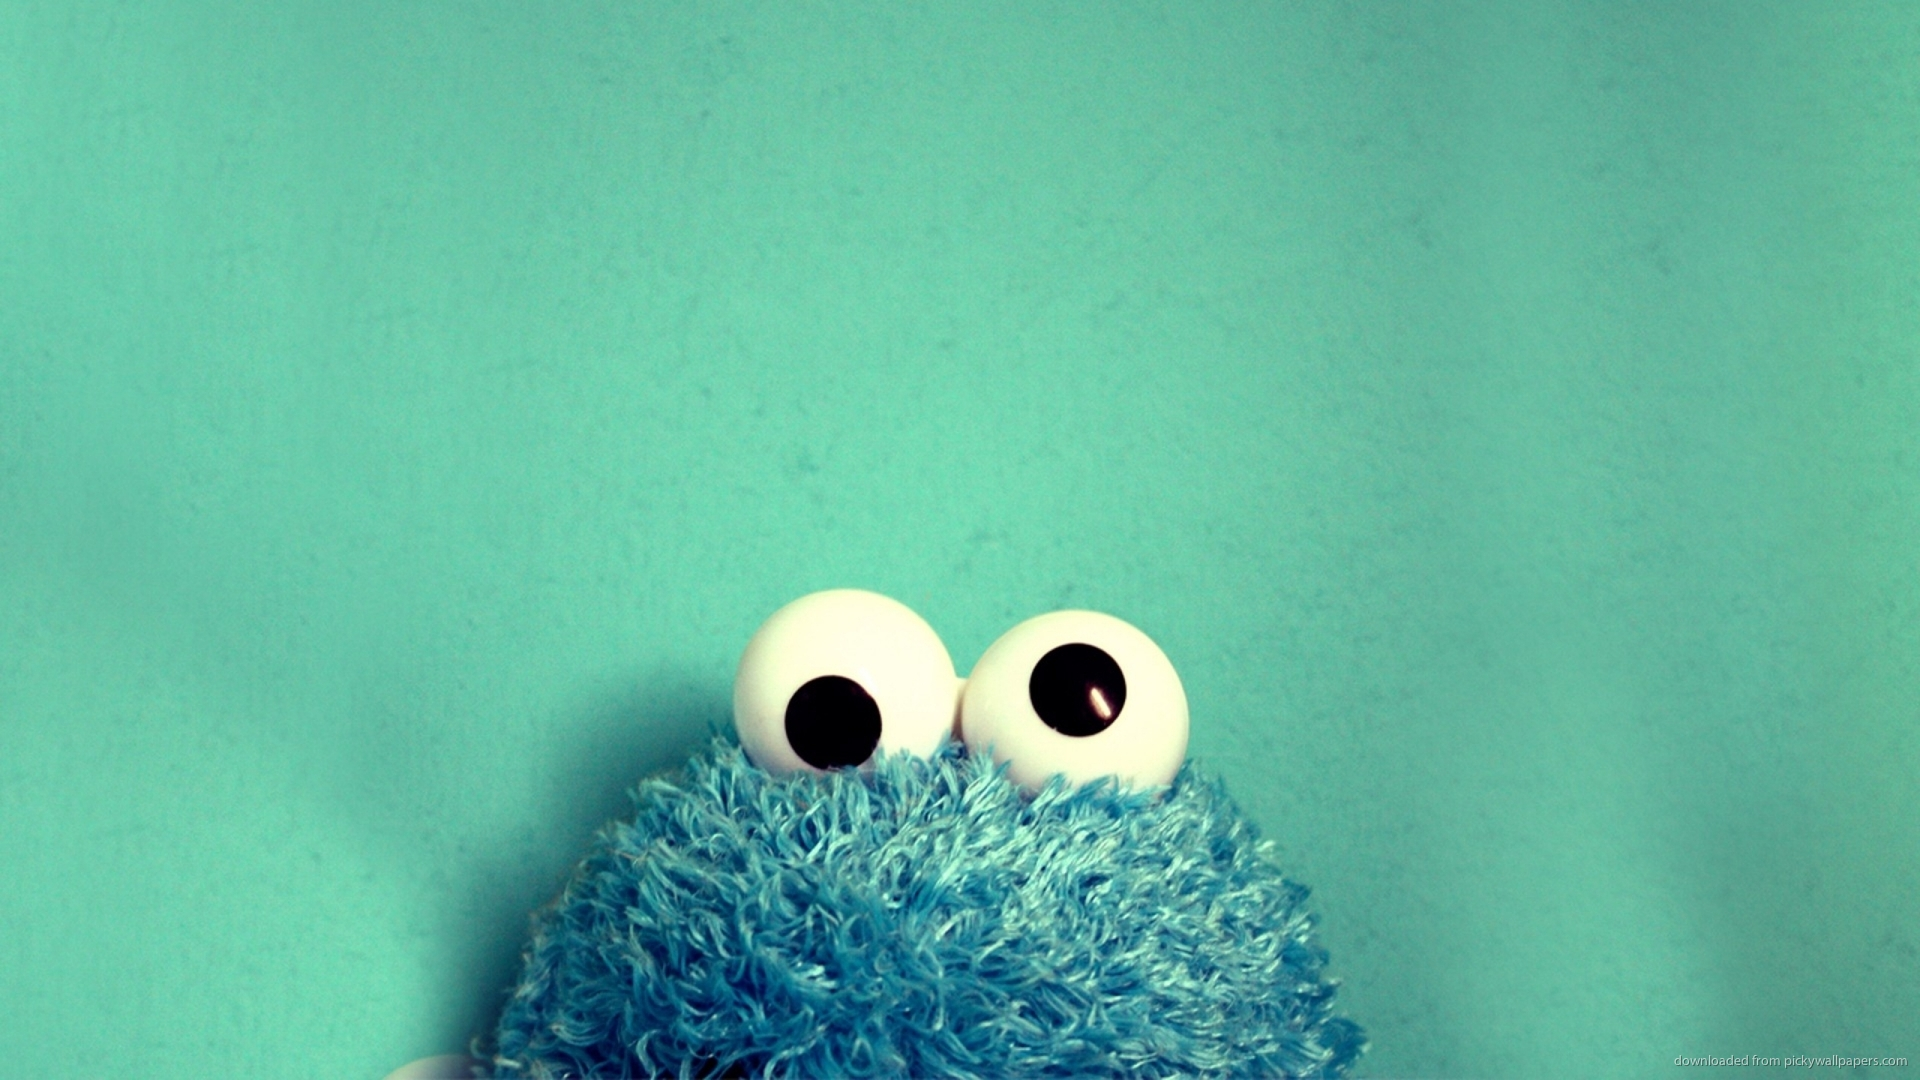 Cookie Monster Toy Wallpaper For Samsung Galaxy Tab 1920x1080